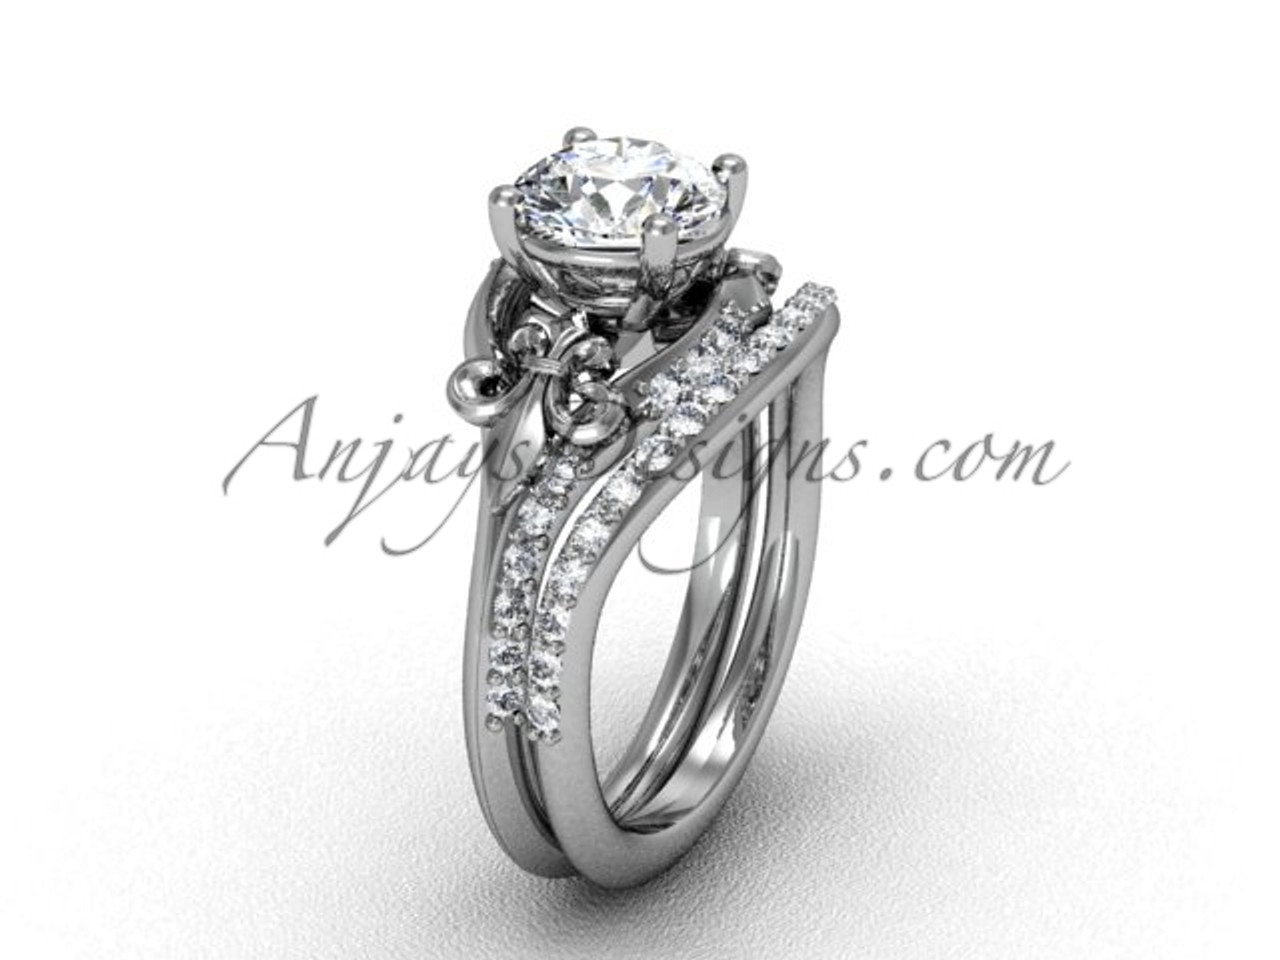 diamond princess a ring shop ctrprincess ctr w wg one g side jewellery engagement